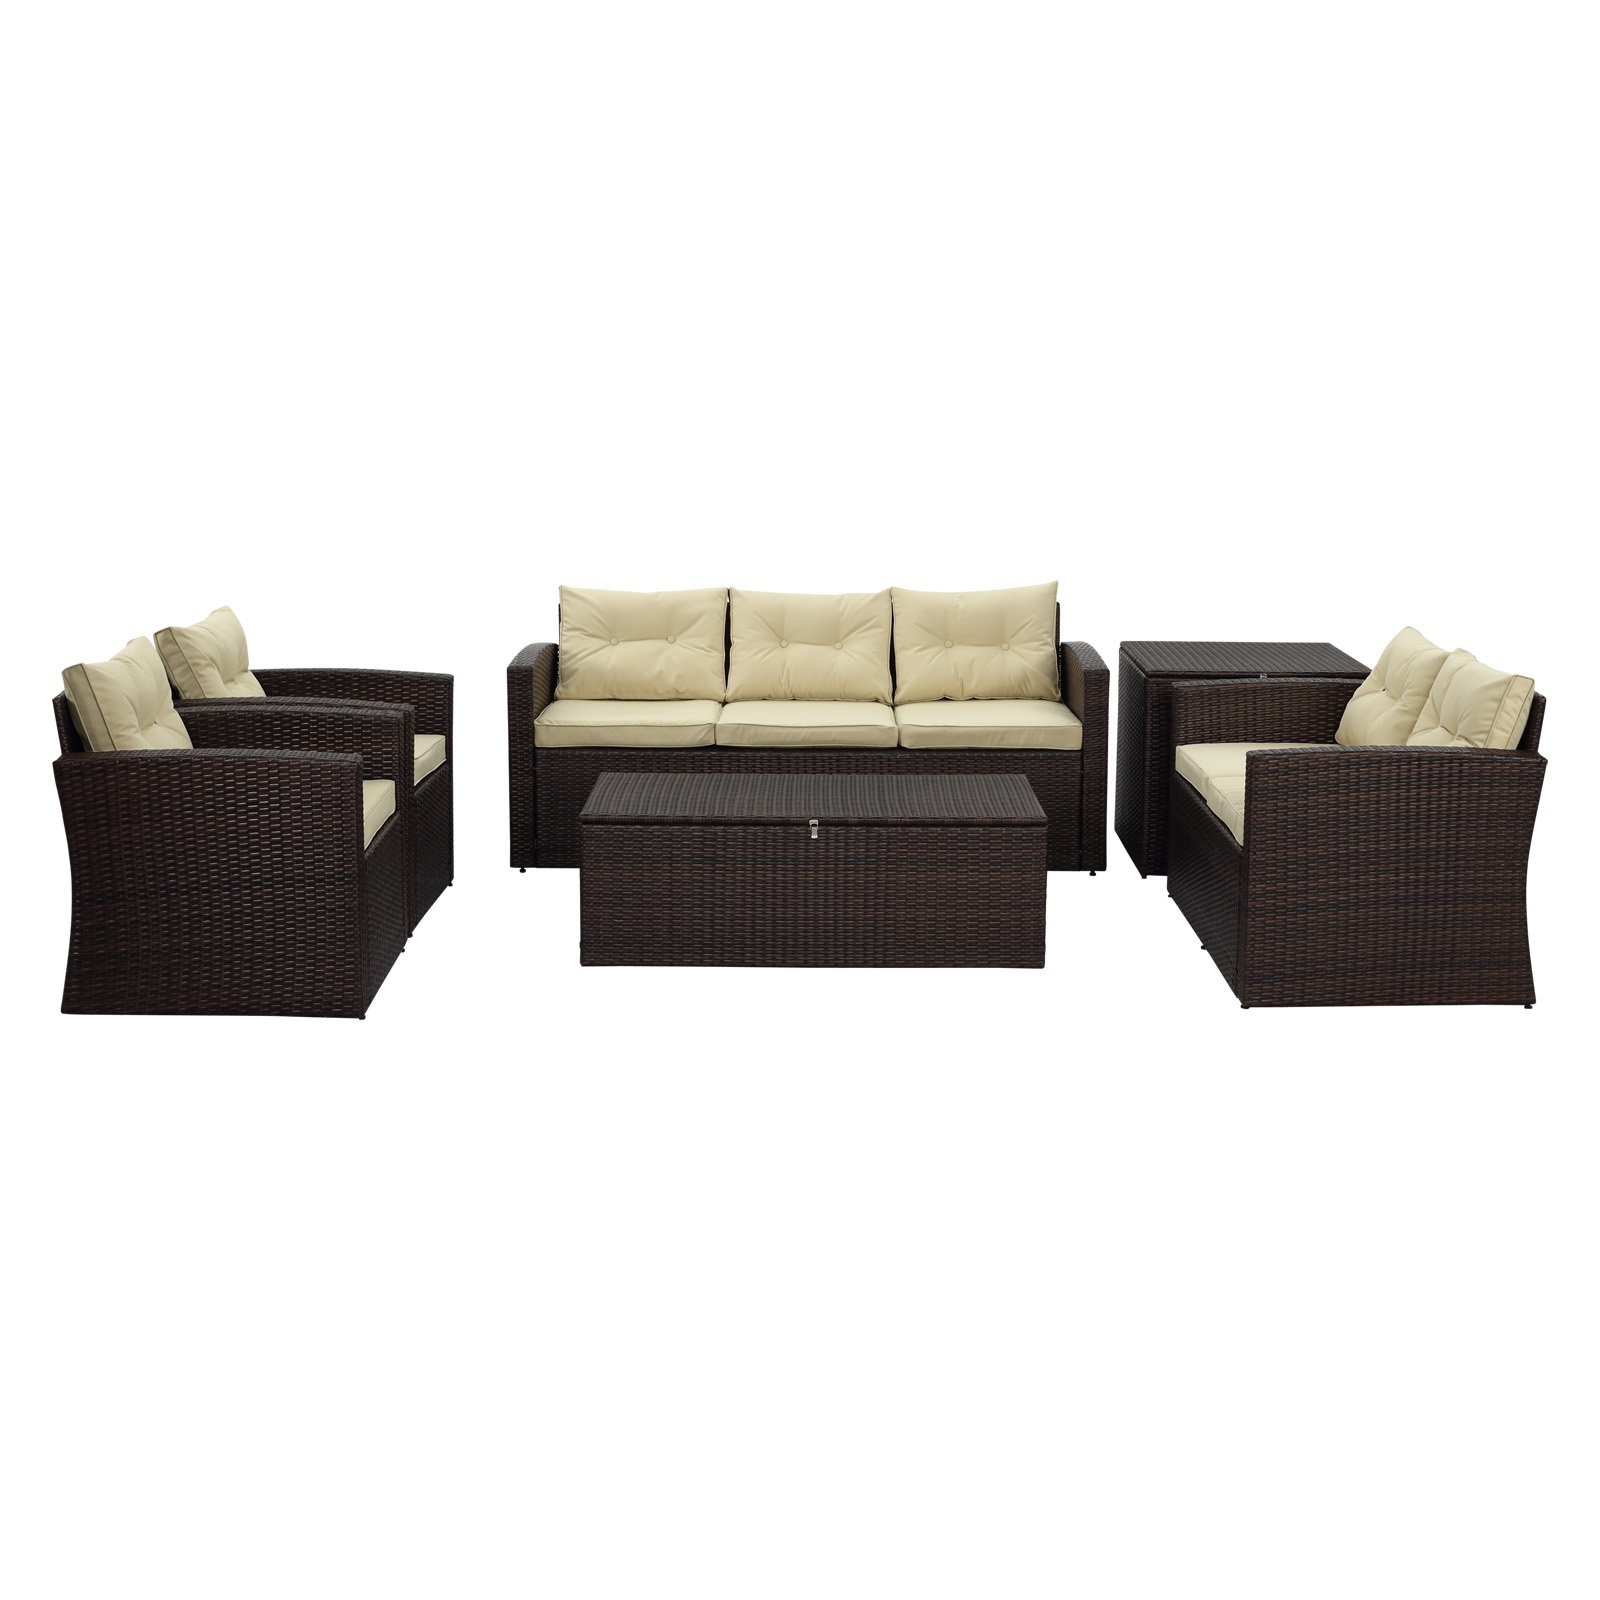 Thy-Hom Rio Wicker All-Weather 6 Piece Patio Conversation Set with Storage by The-Hom